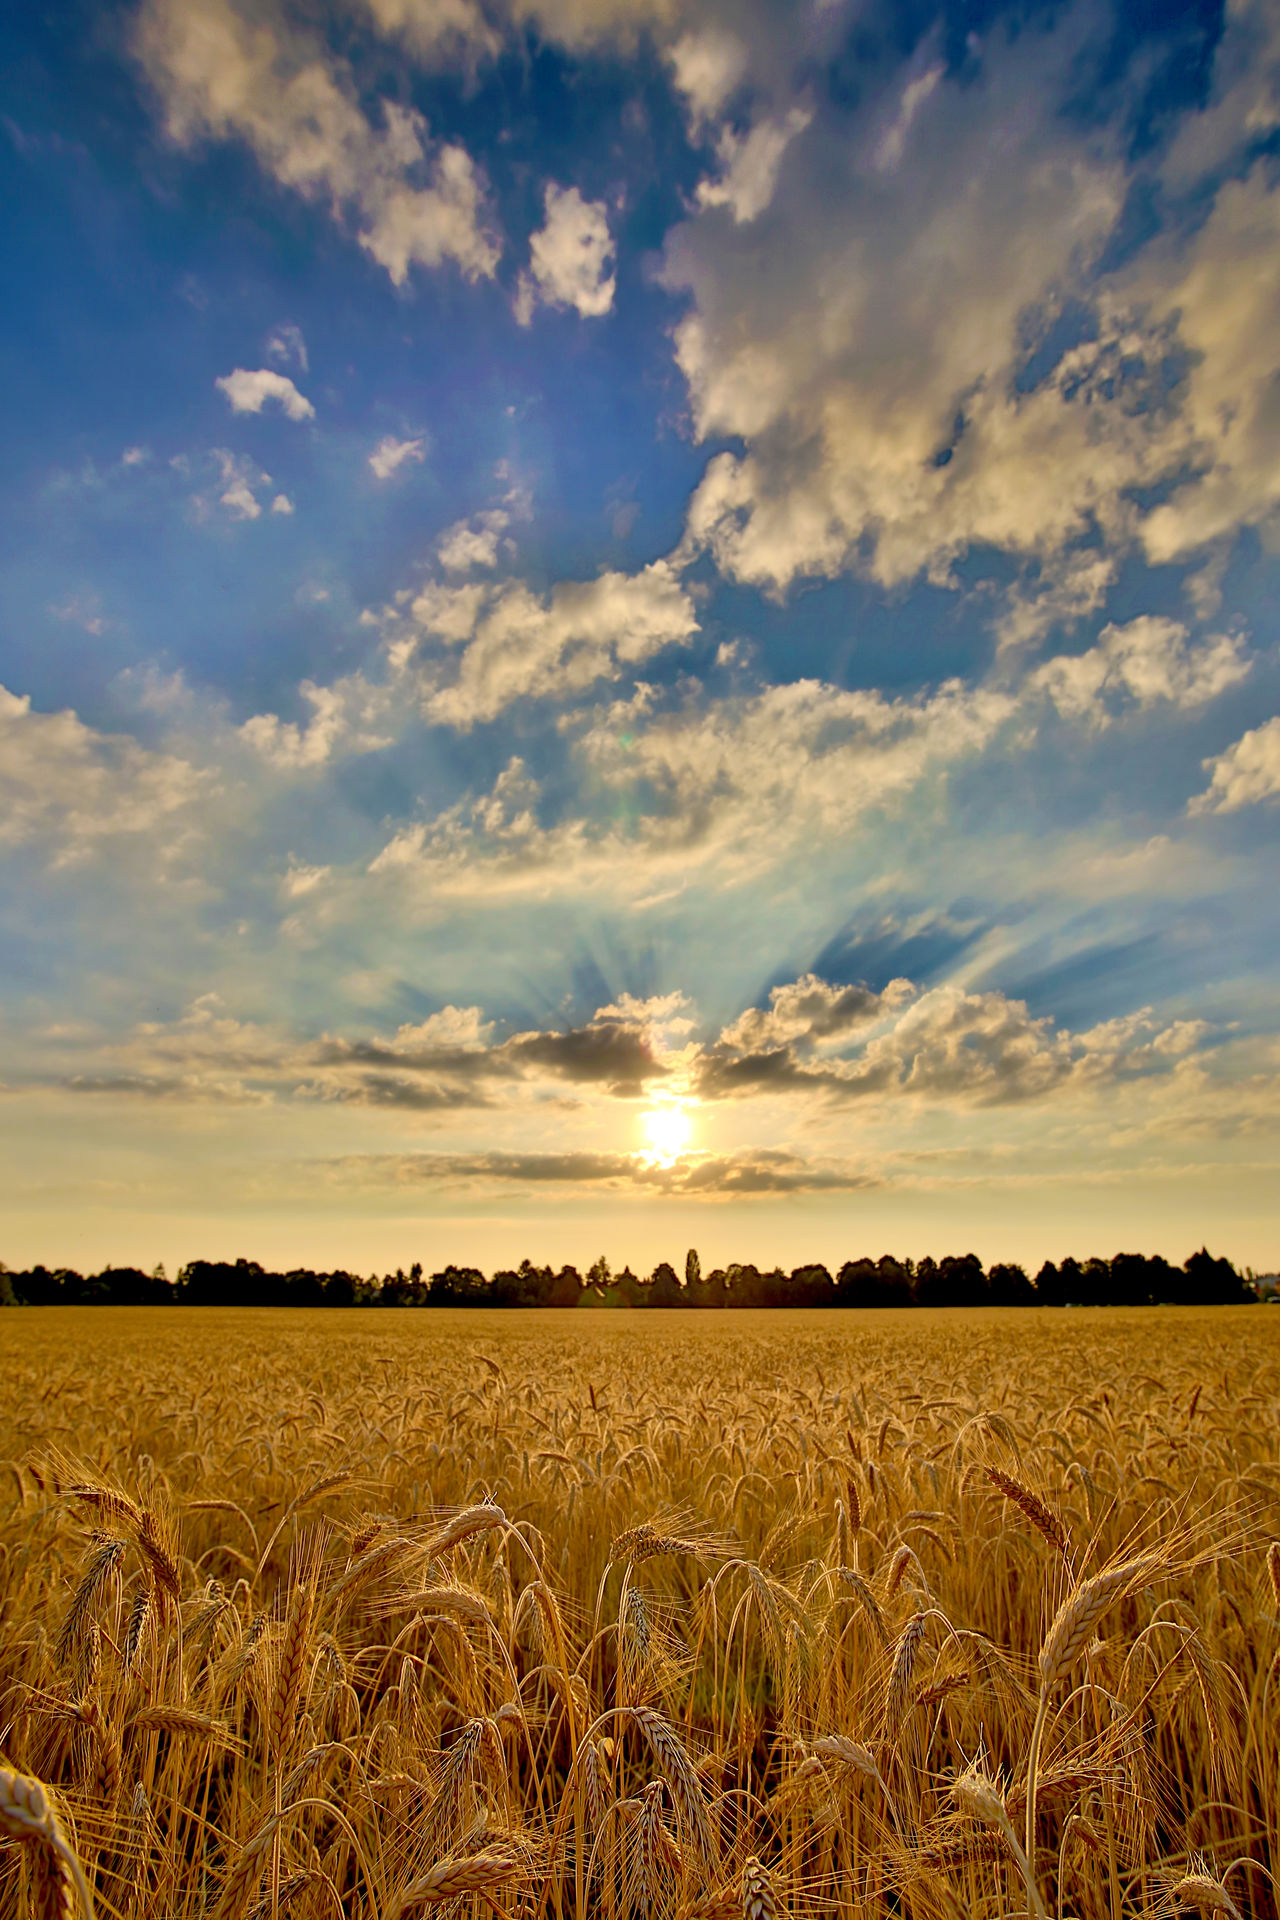 Agriculture Beauty In Nature Cereal Cereal Field Cereal Plant Cloud - Sky EyeEmNewHere Field Landscape Nature Outdoors Rural Scene Scenics Sky Sunset Wheat Wheat Field